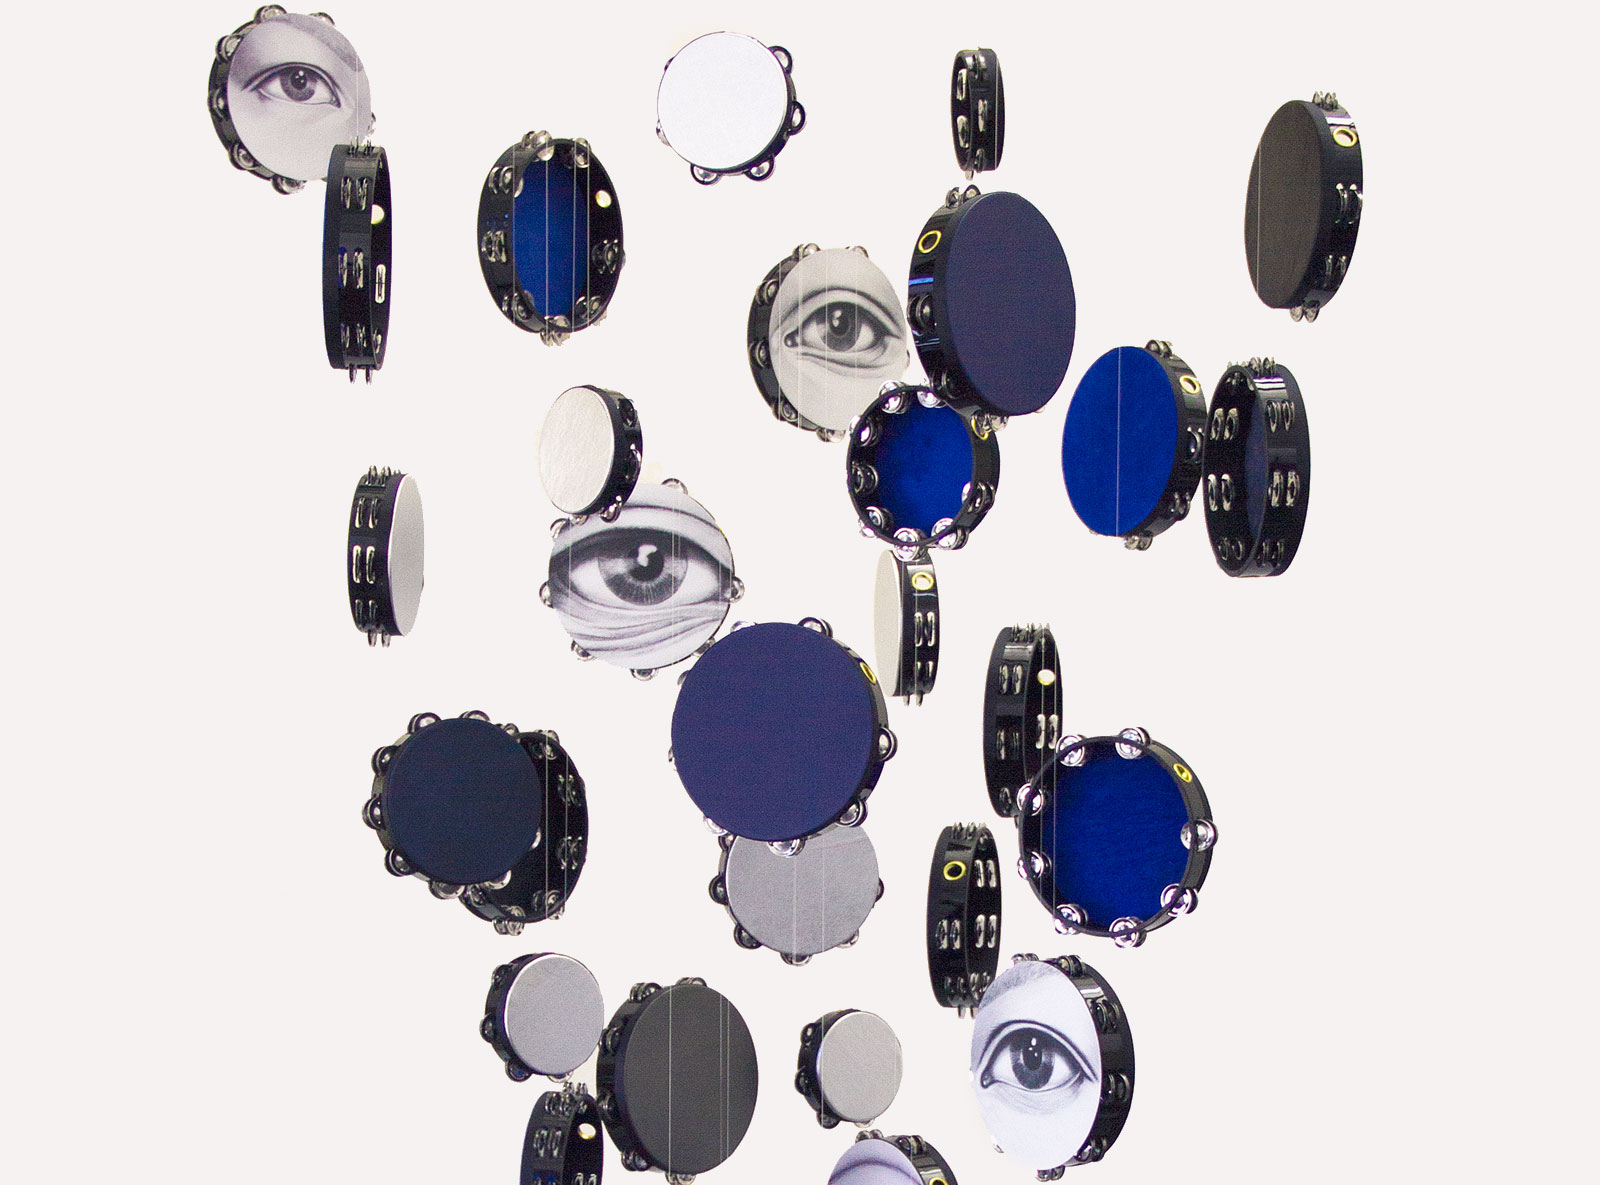 hanging tambourines with painted eyes